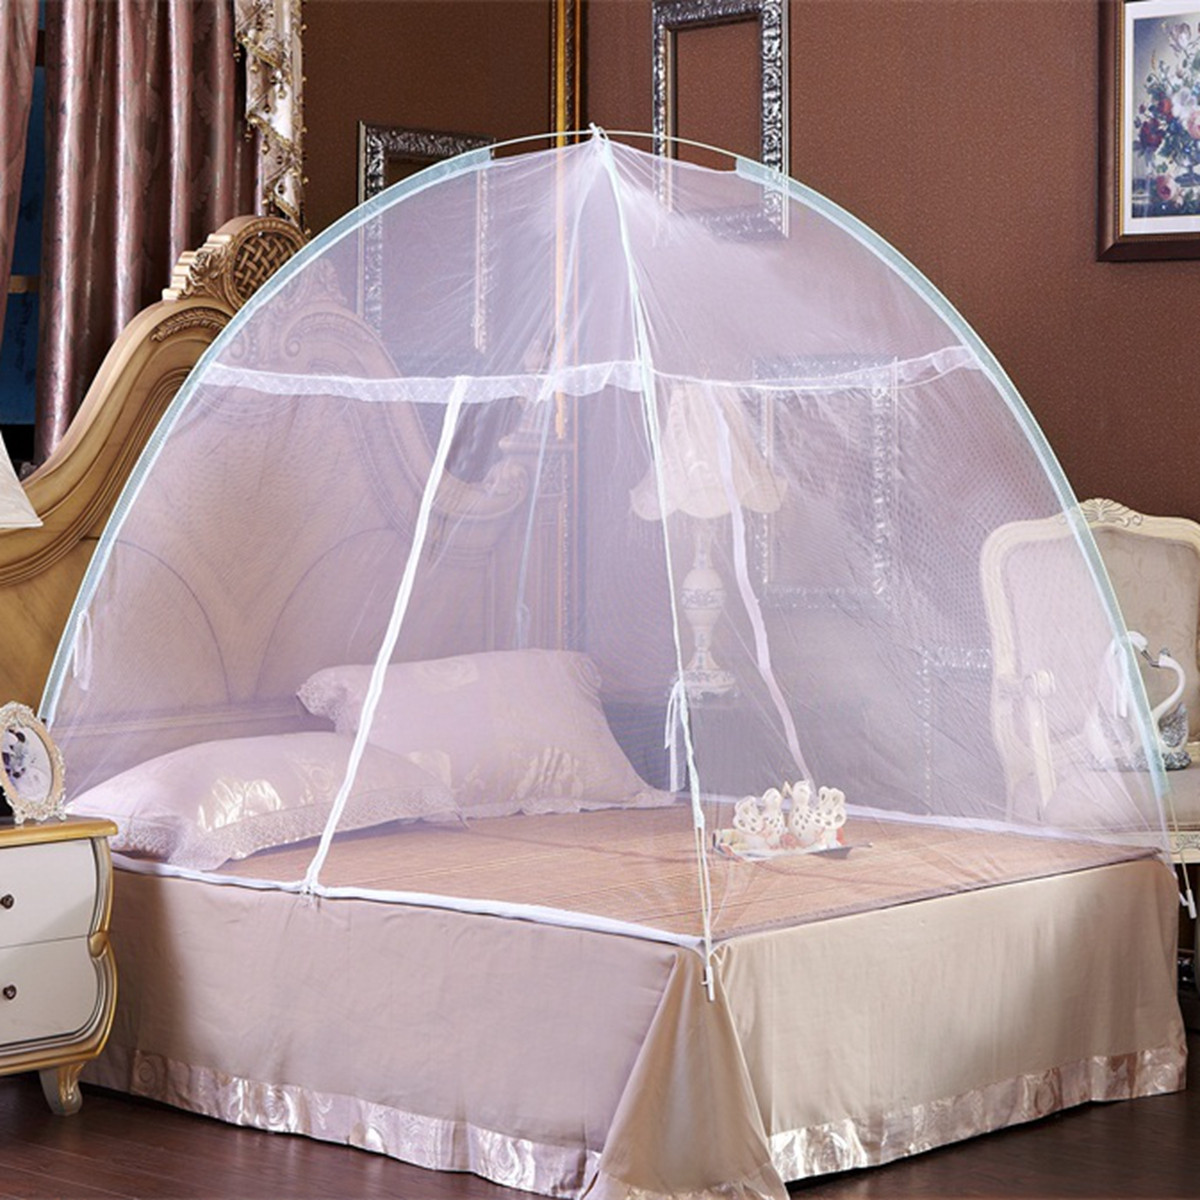 Meigar Foldable Baby Adult Double Zipper Door Sleeping Yurt Mosquito Net Bed Canopy with Stand